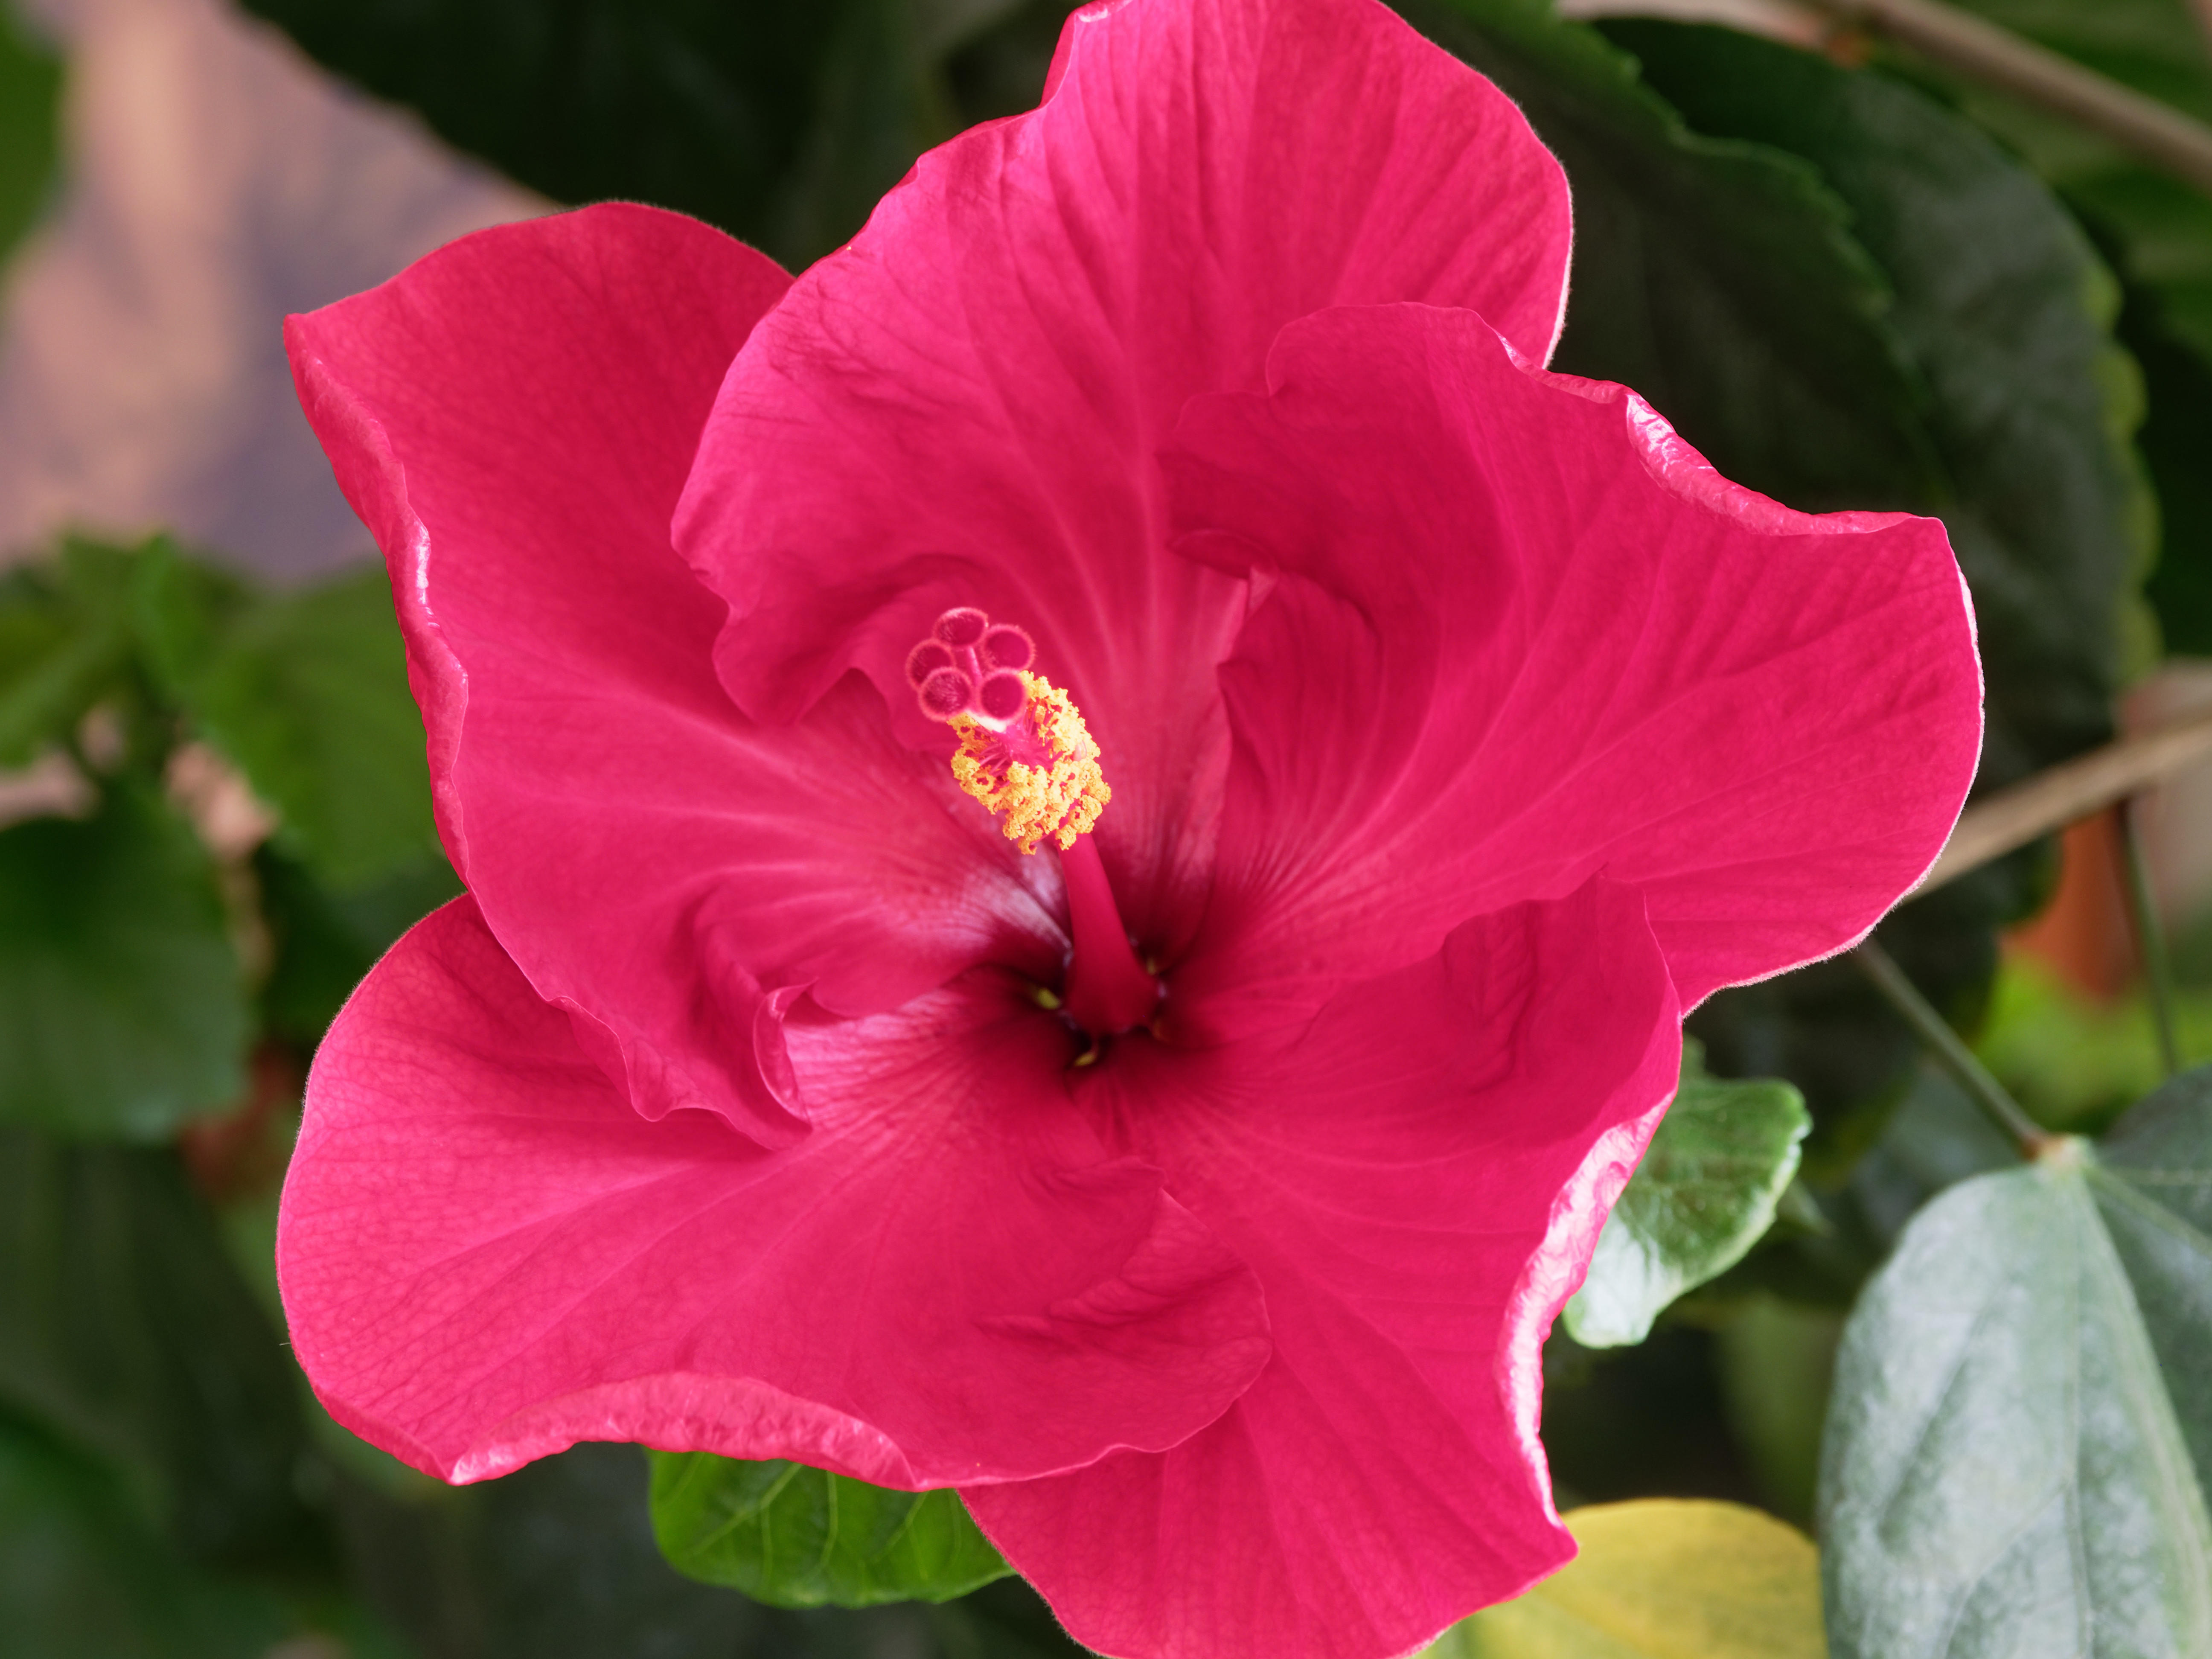 This should be Hibiscus-36.jpeg.  Is it missing?